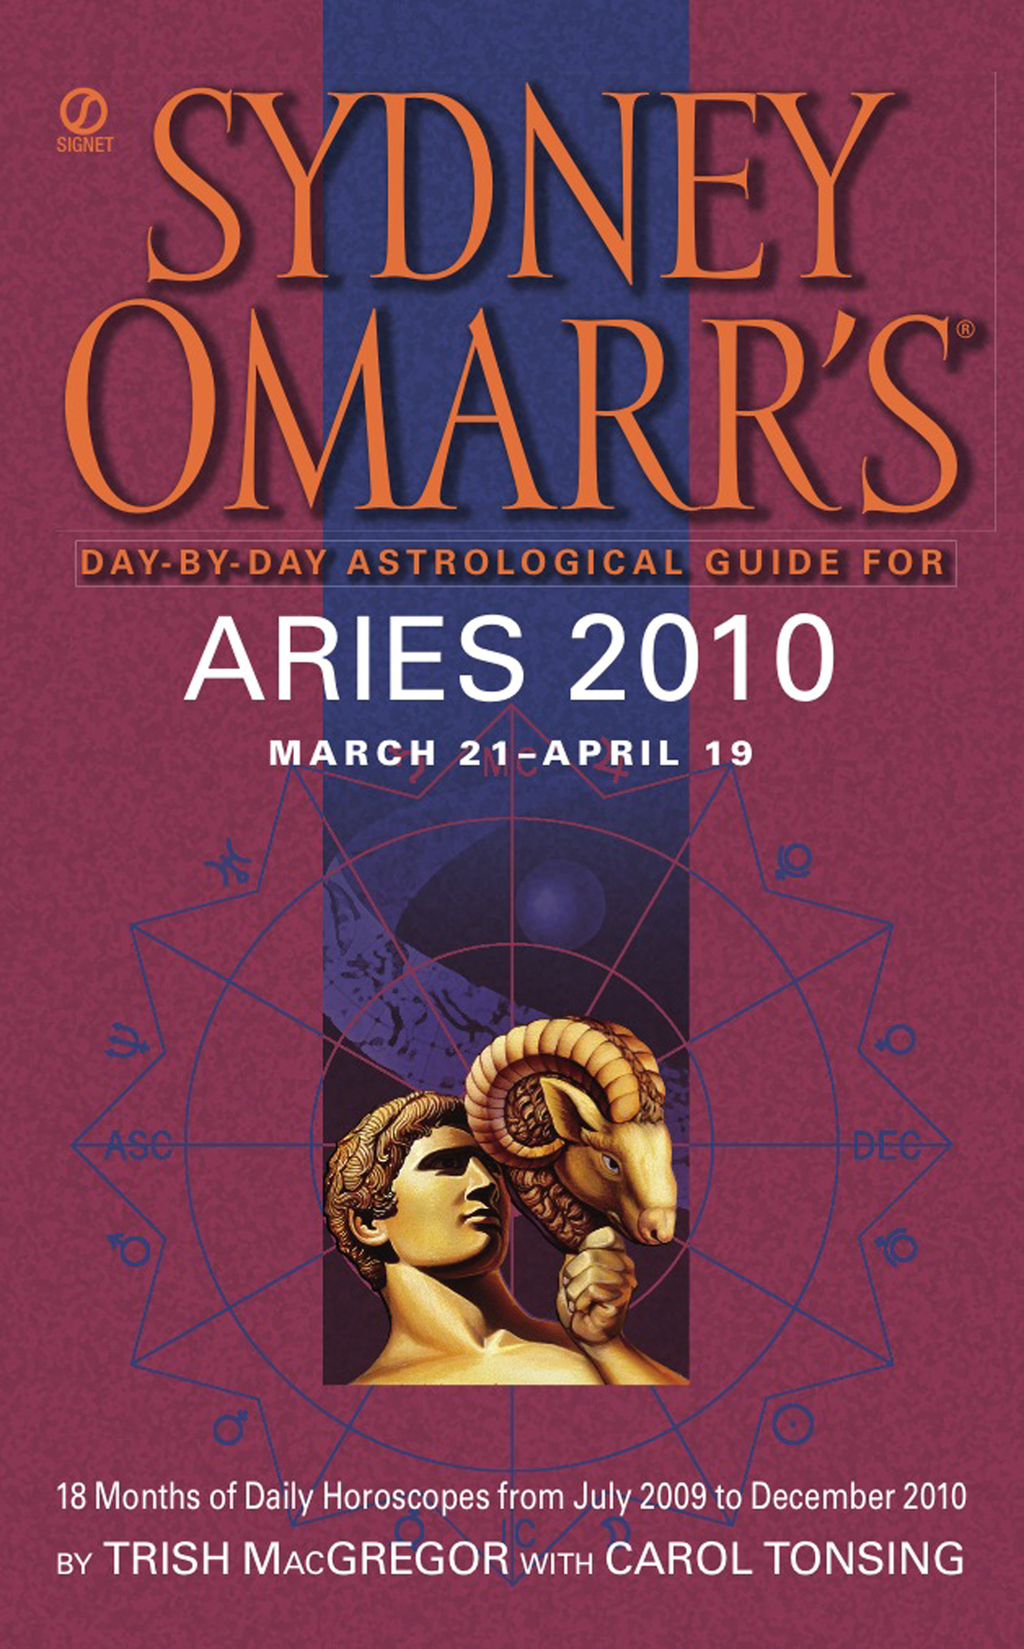 Sydney Omarr's Day-By-Day Astrological Guide for the Year 2010: Aries